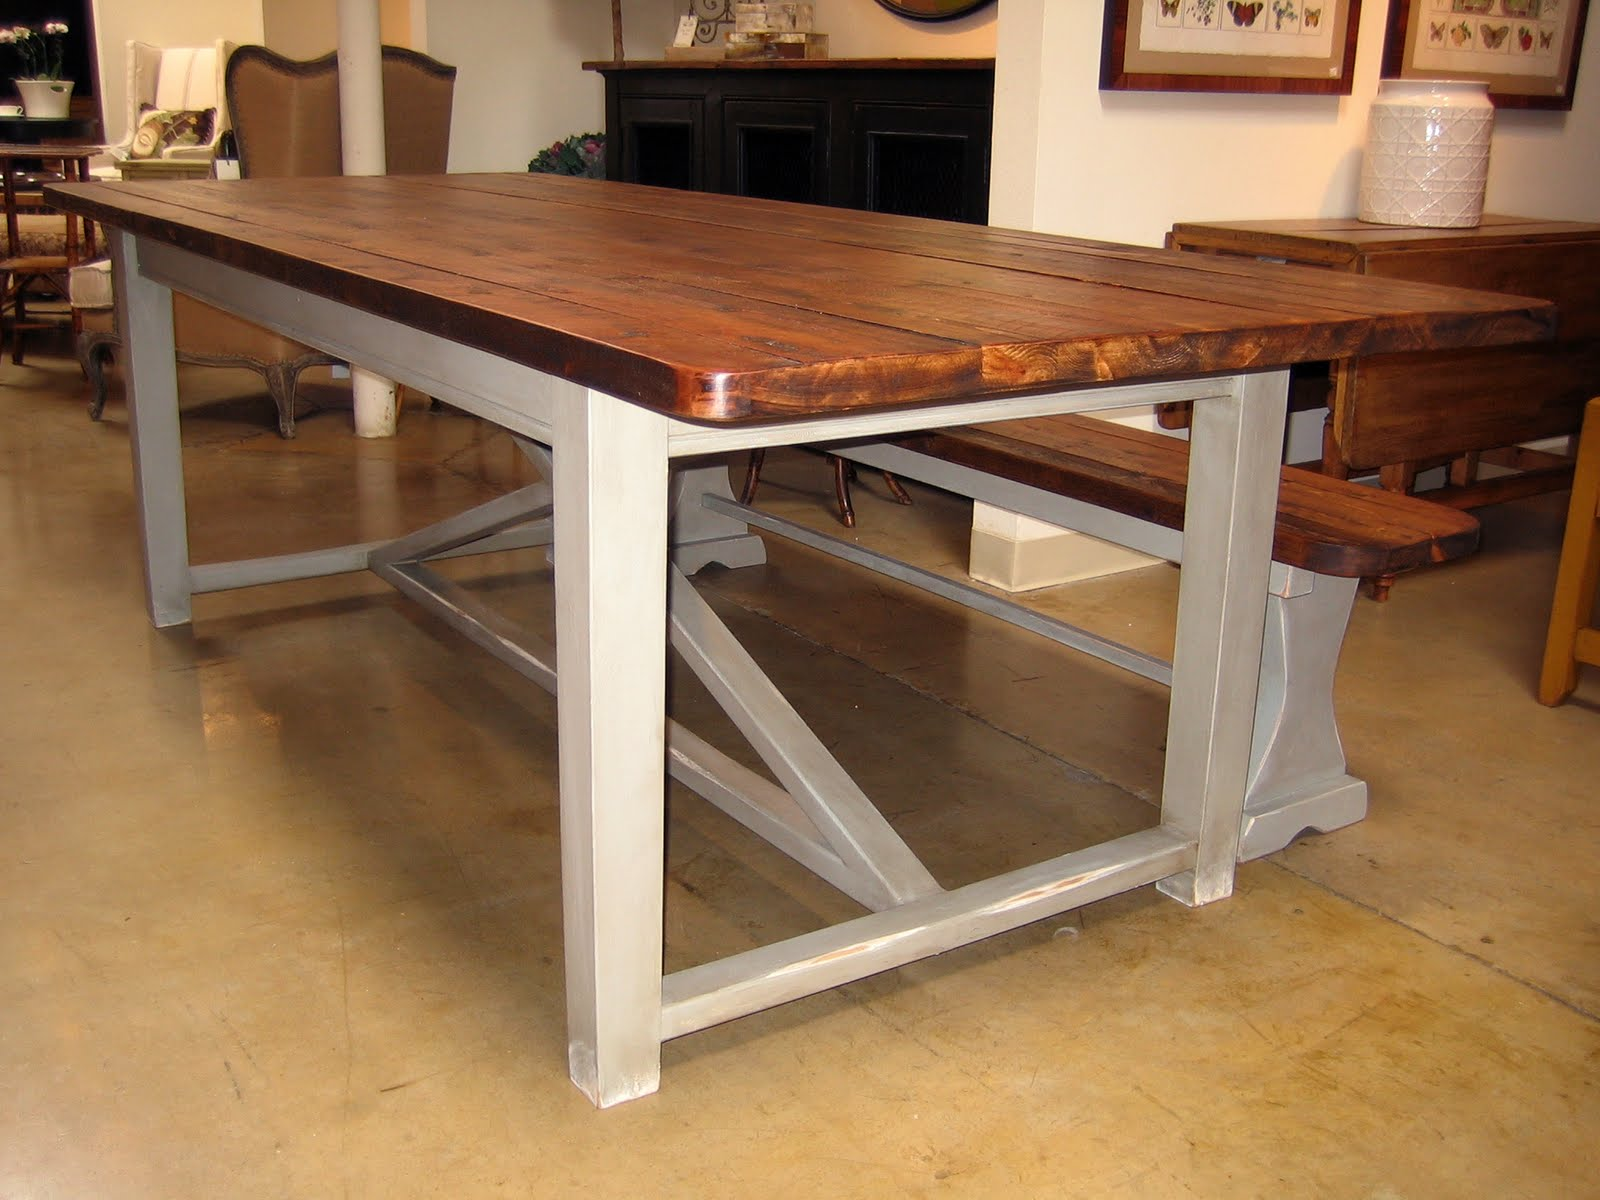 New Trestle Table And Benches Farmhouse Company